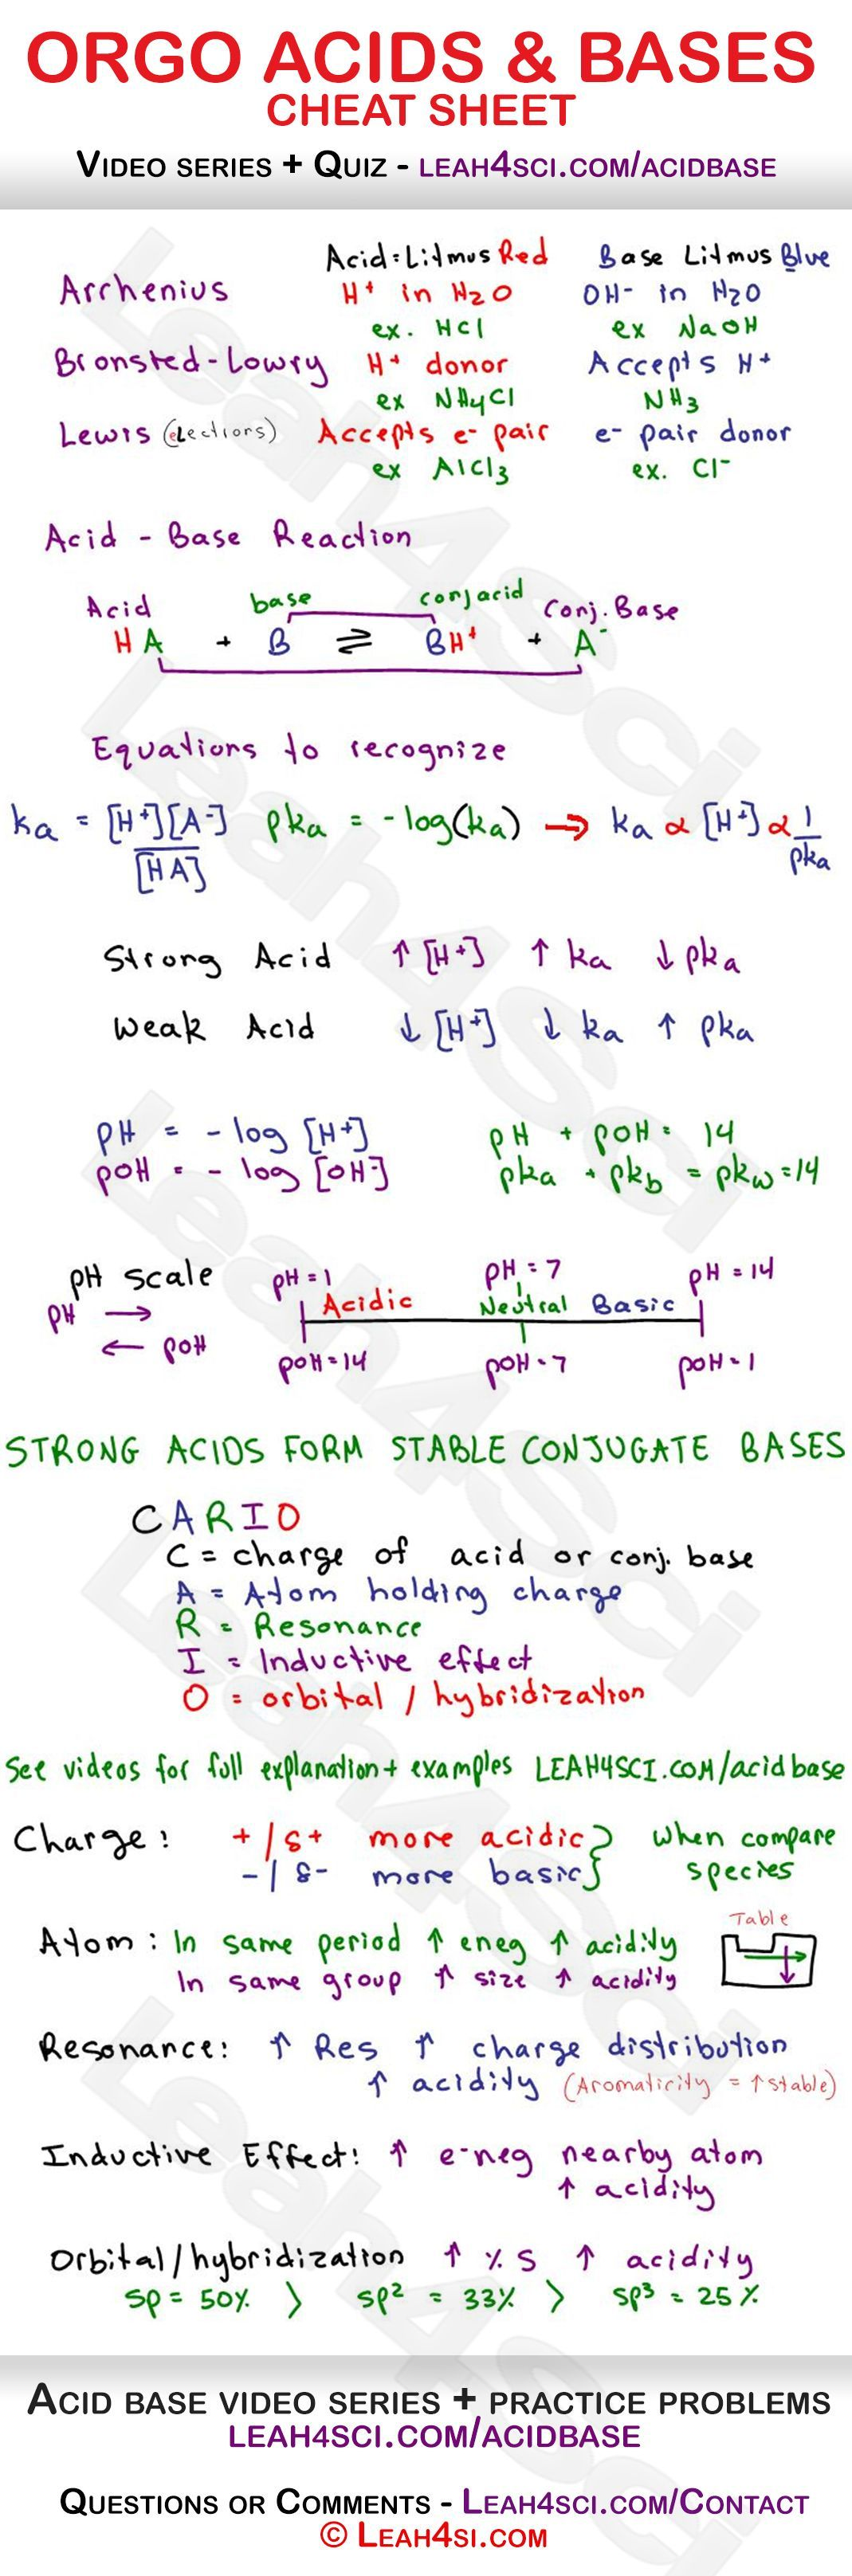 Acids And Bases In Organic Chemistry Arrhenius Bronsted Lowry And